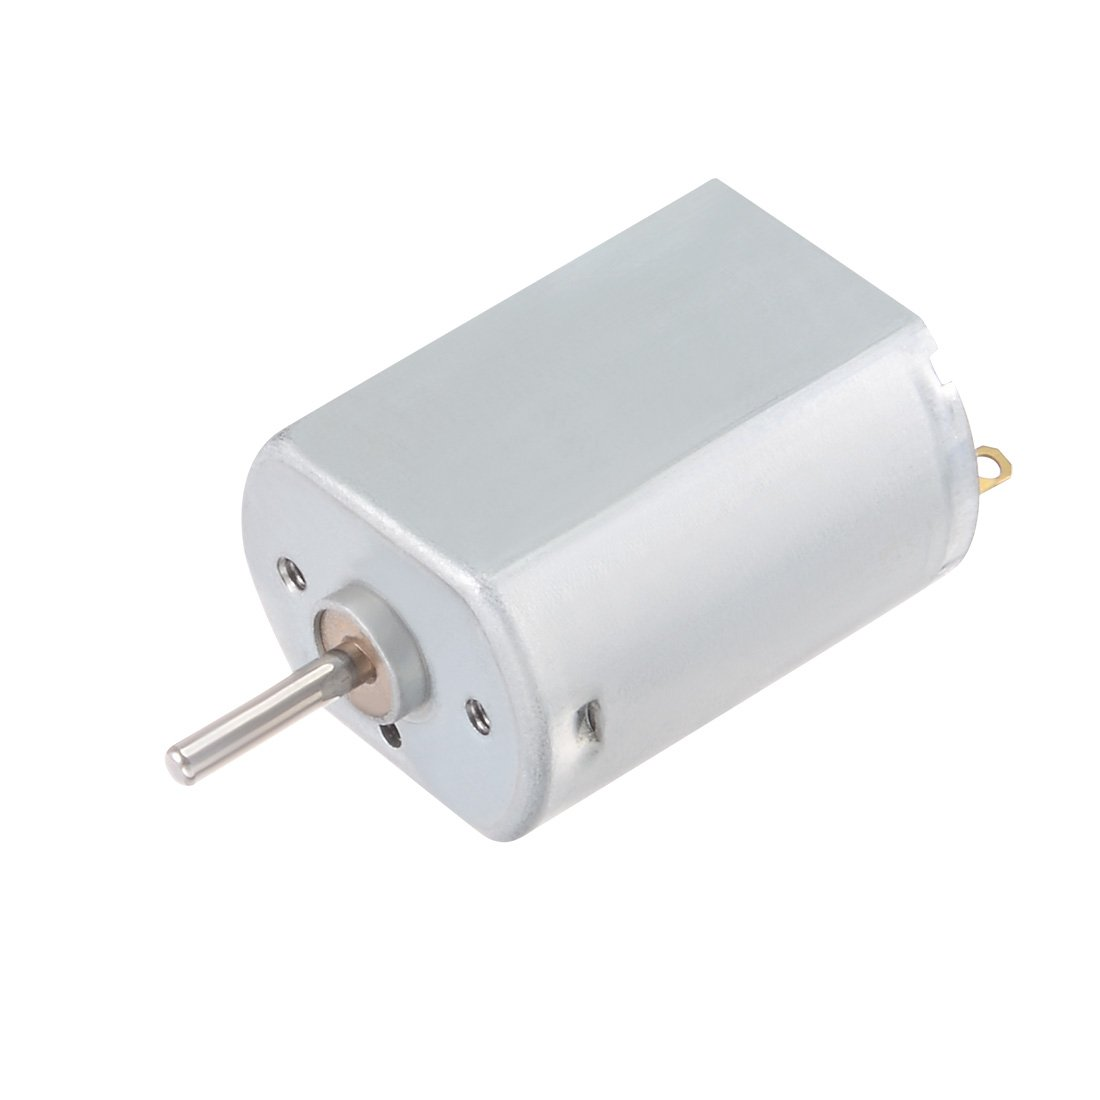 Sourcingmap Small Motor DC 6V 5100RPM High Speed Motor for DIY Hobby Toy Cars Remote Control a17082900ux0350